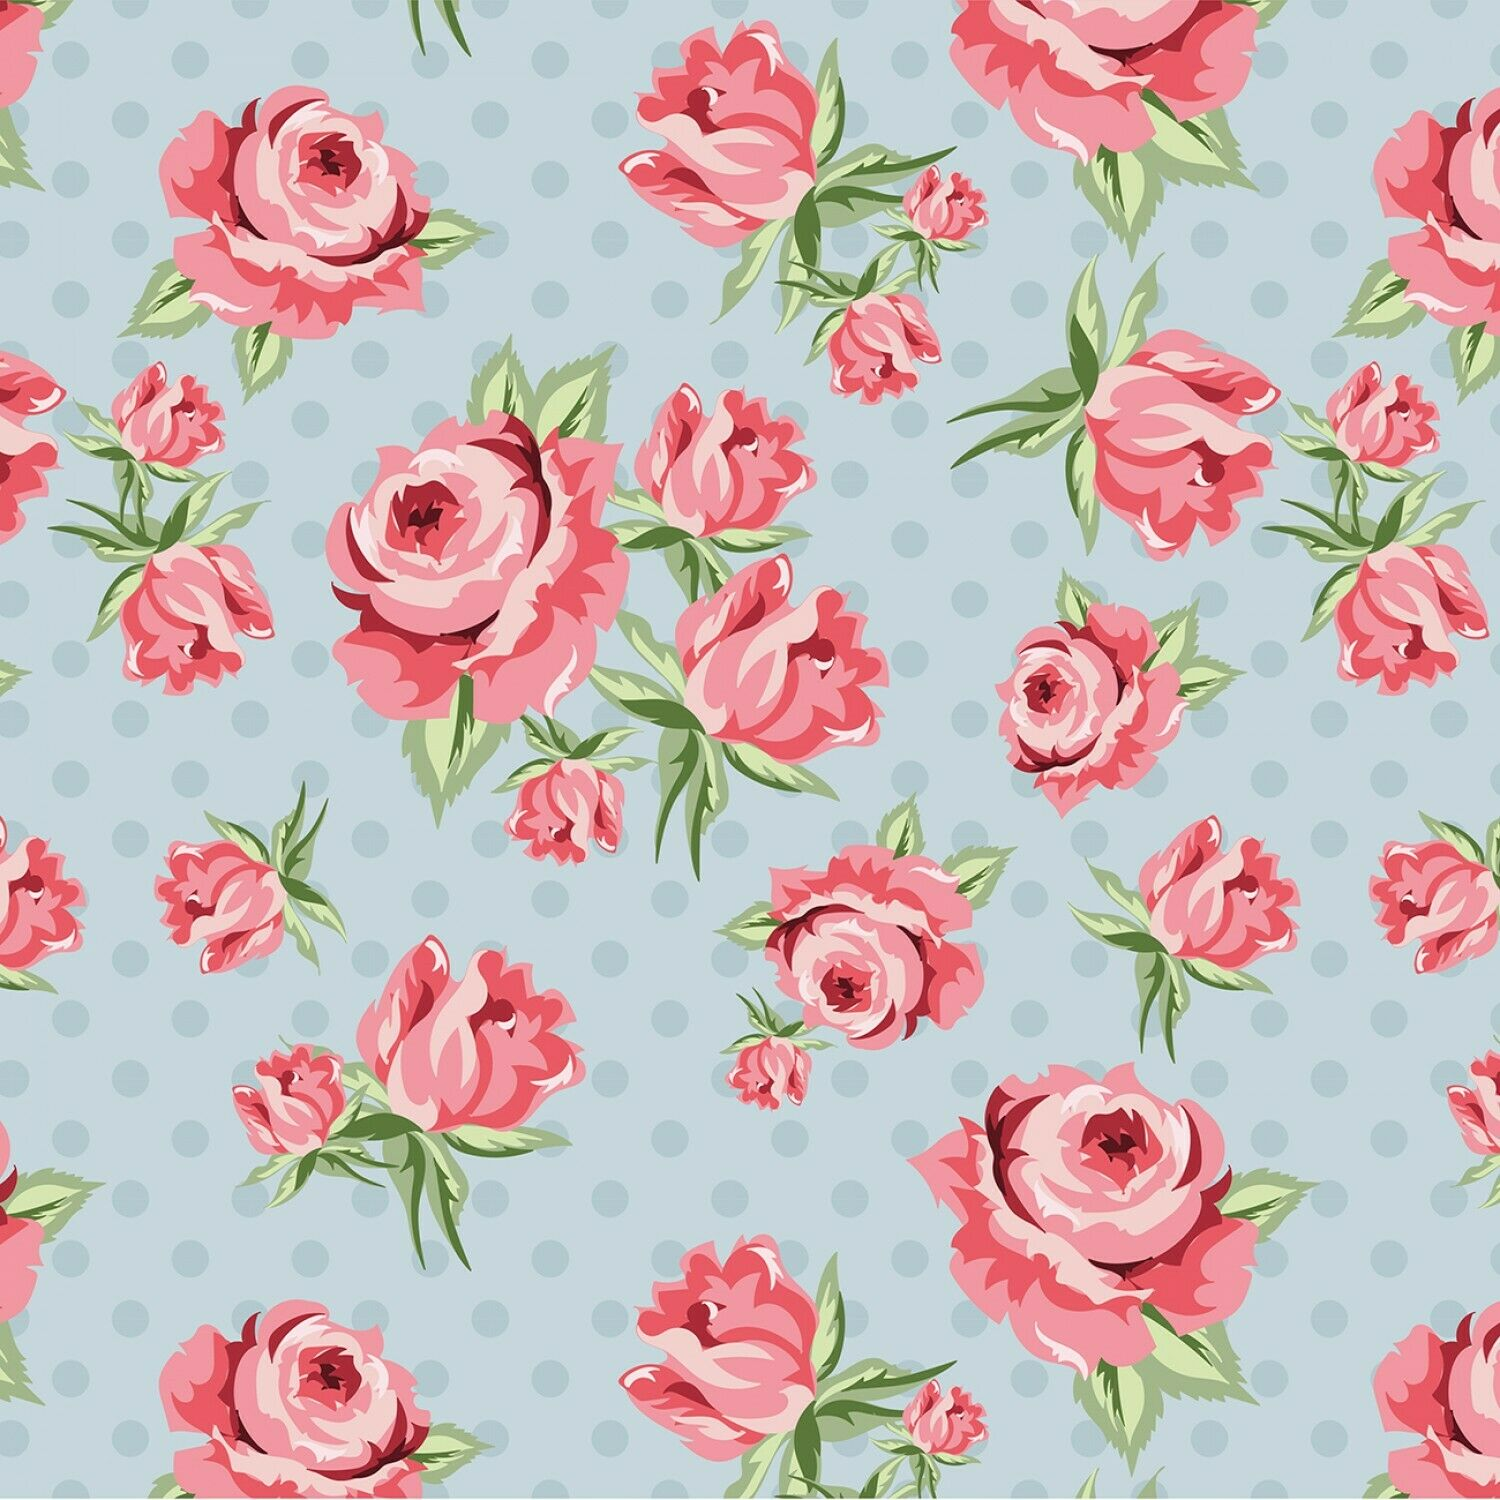 Blue Prize Roses Fabric-Dots & Posies Collection by Poppie Cottons SBY